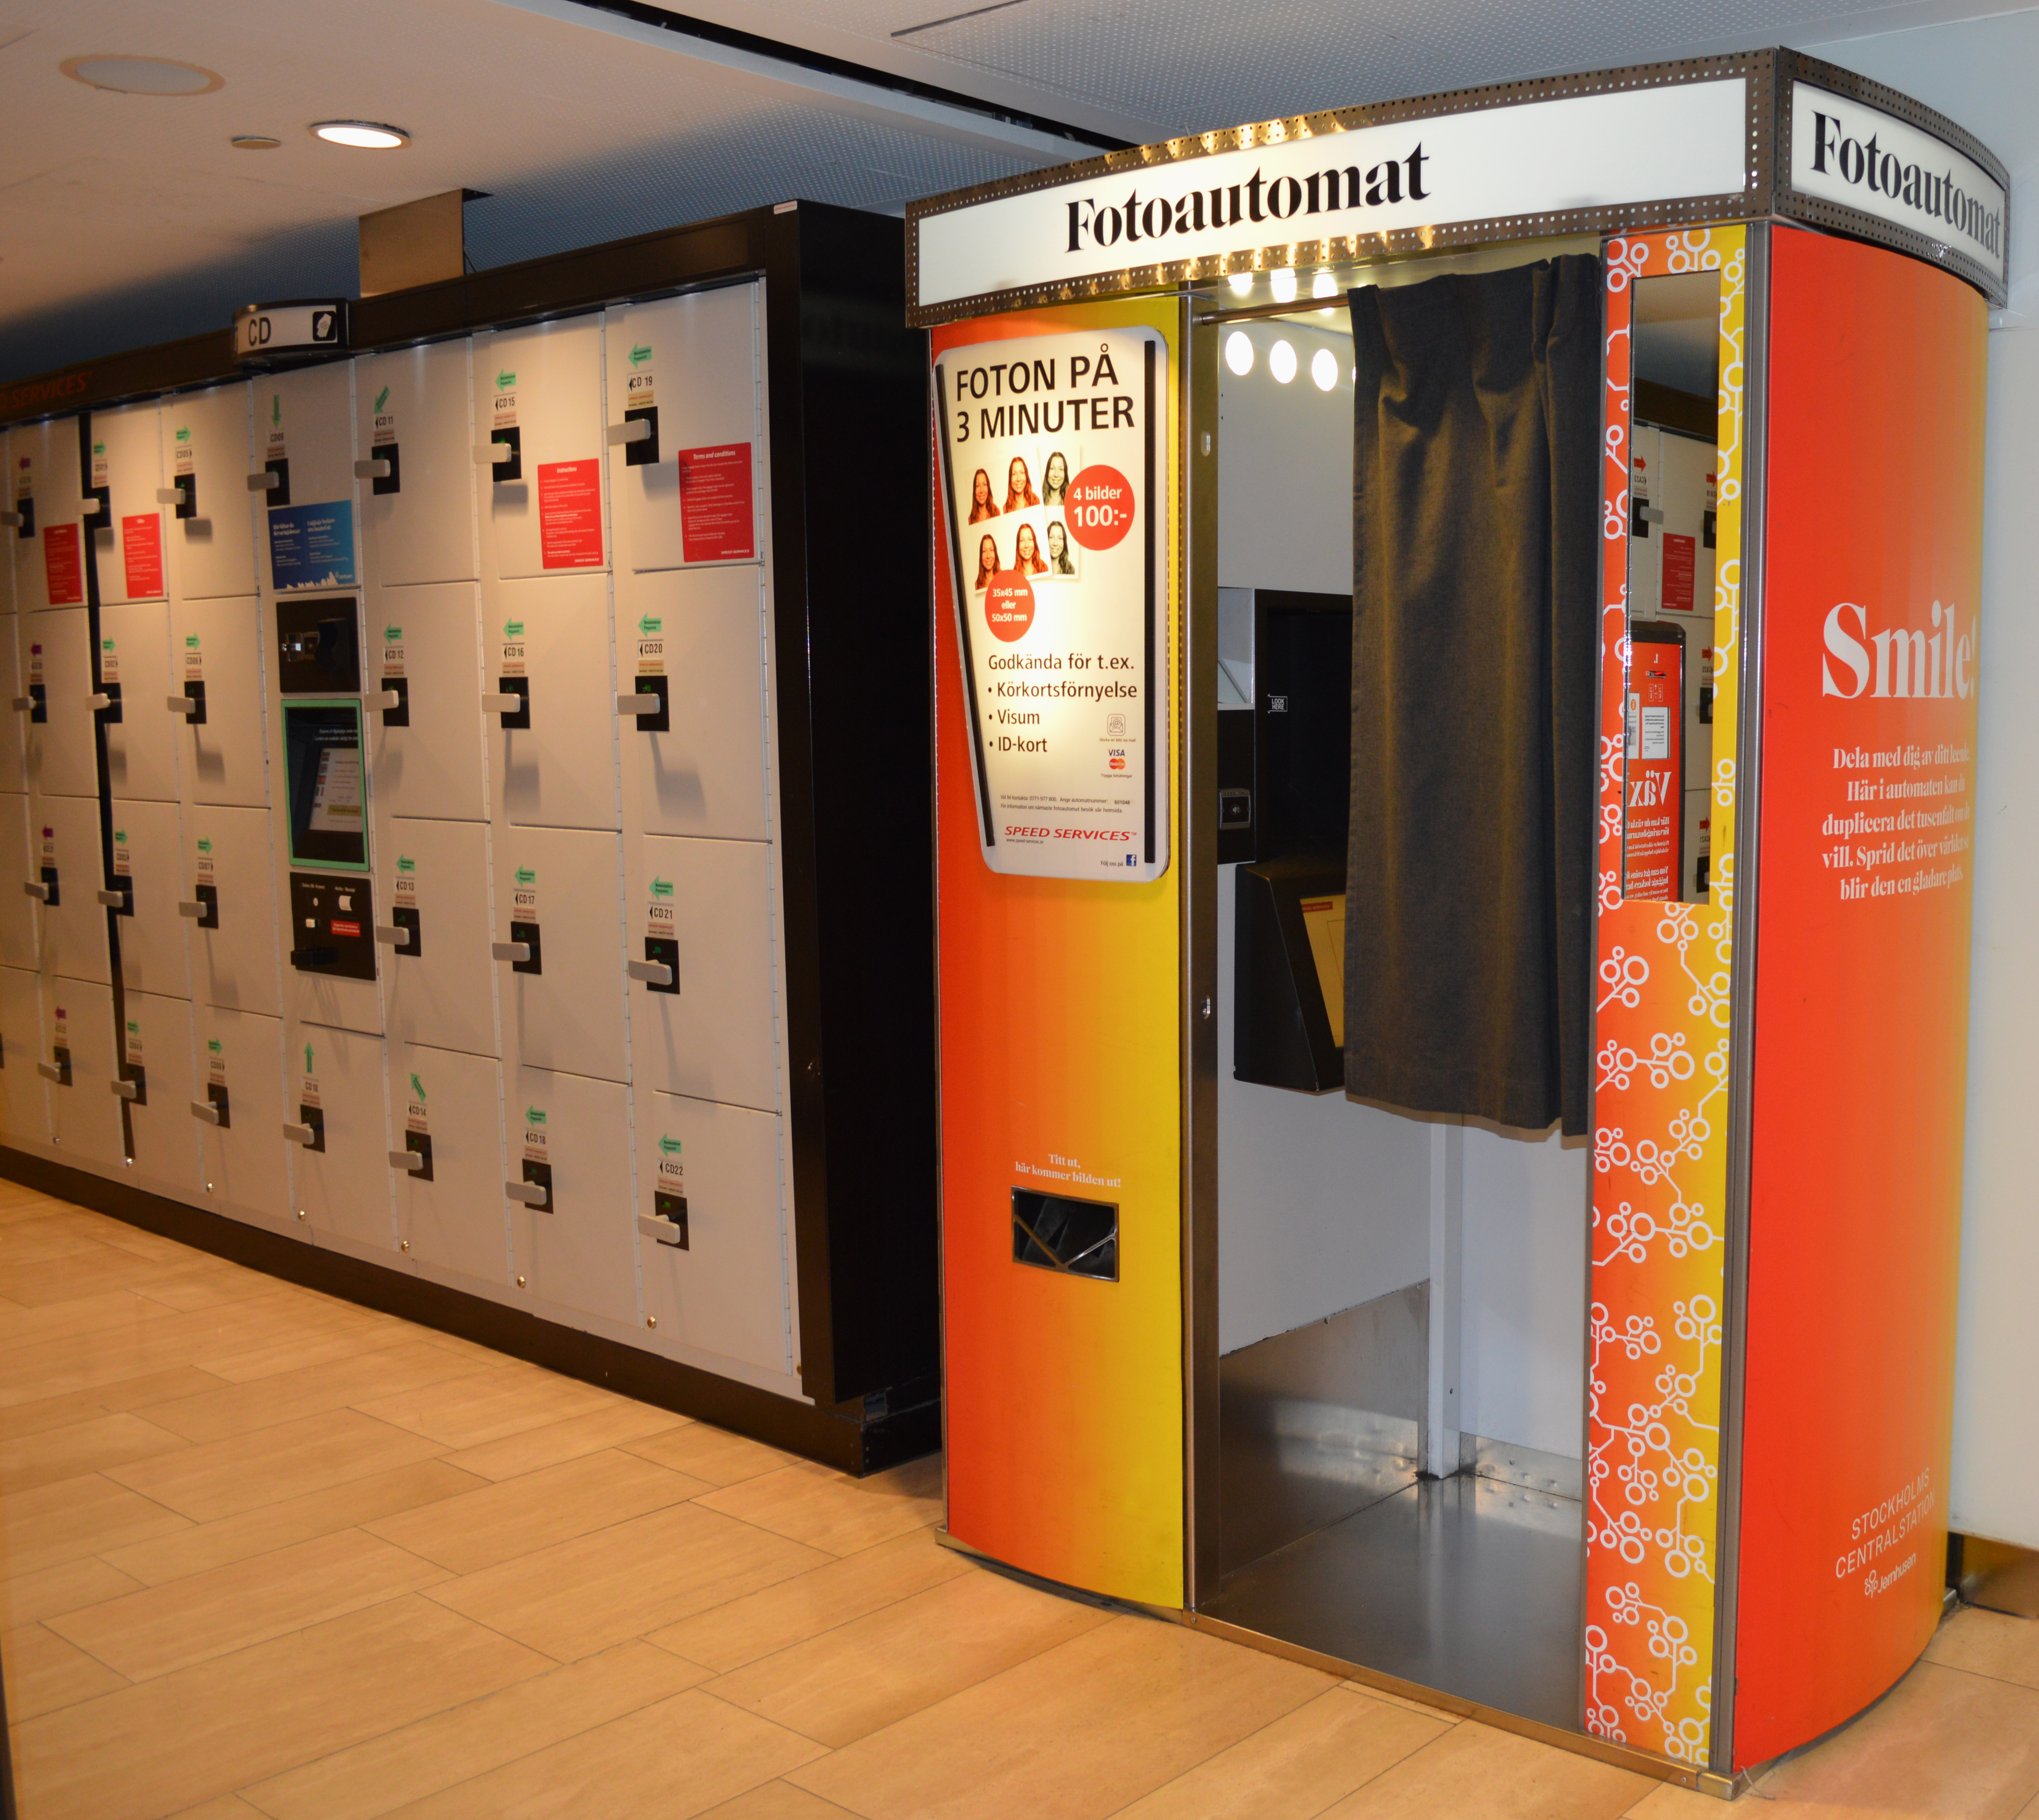 Photo booth and storage lockers at Stockholm central railway station